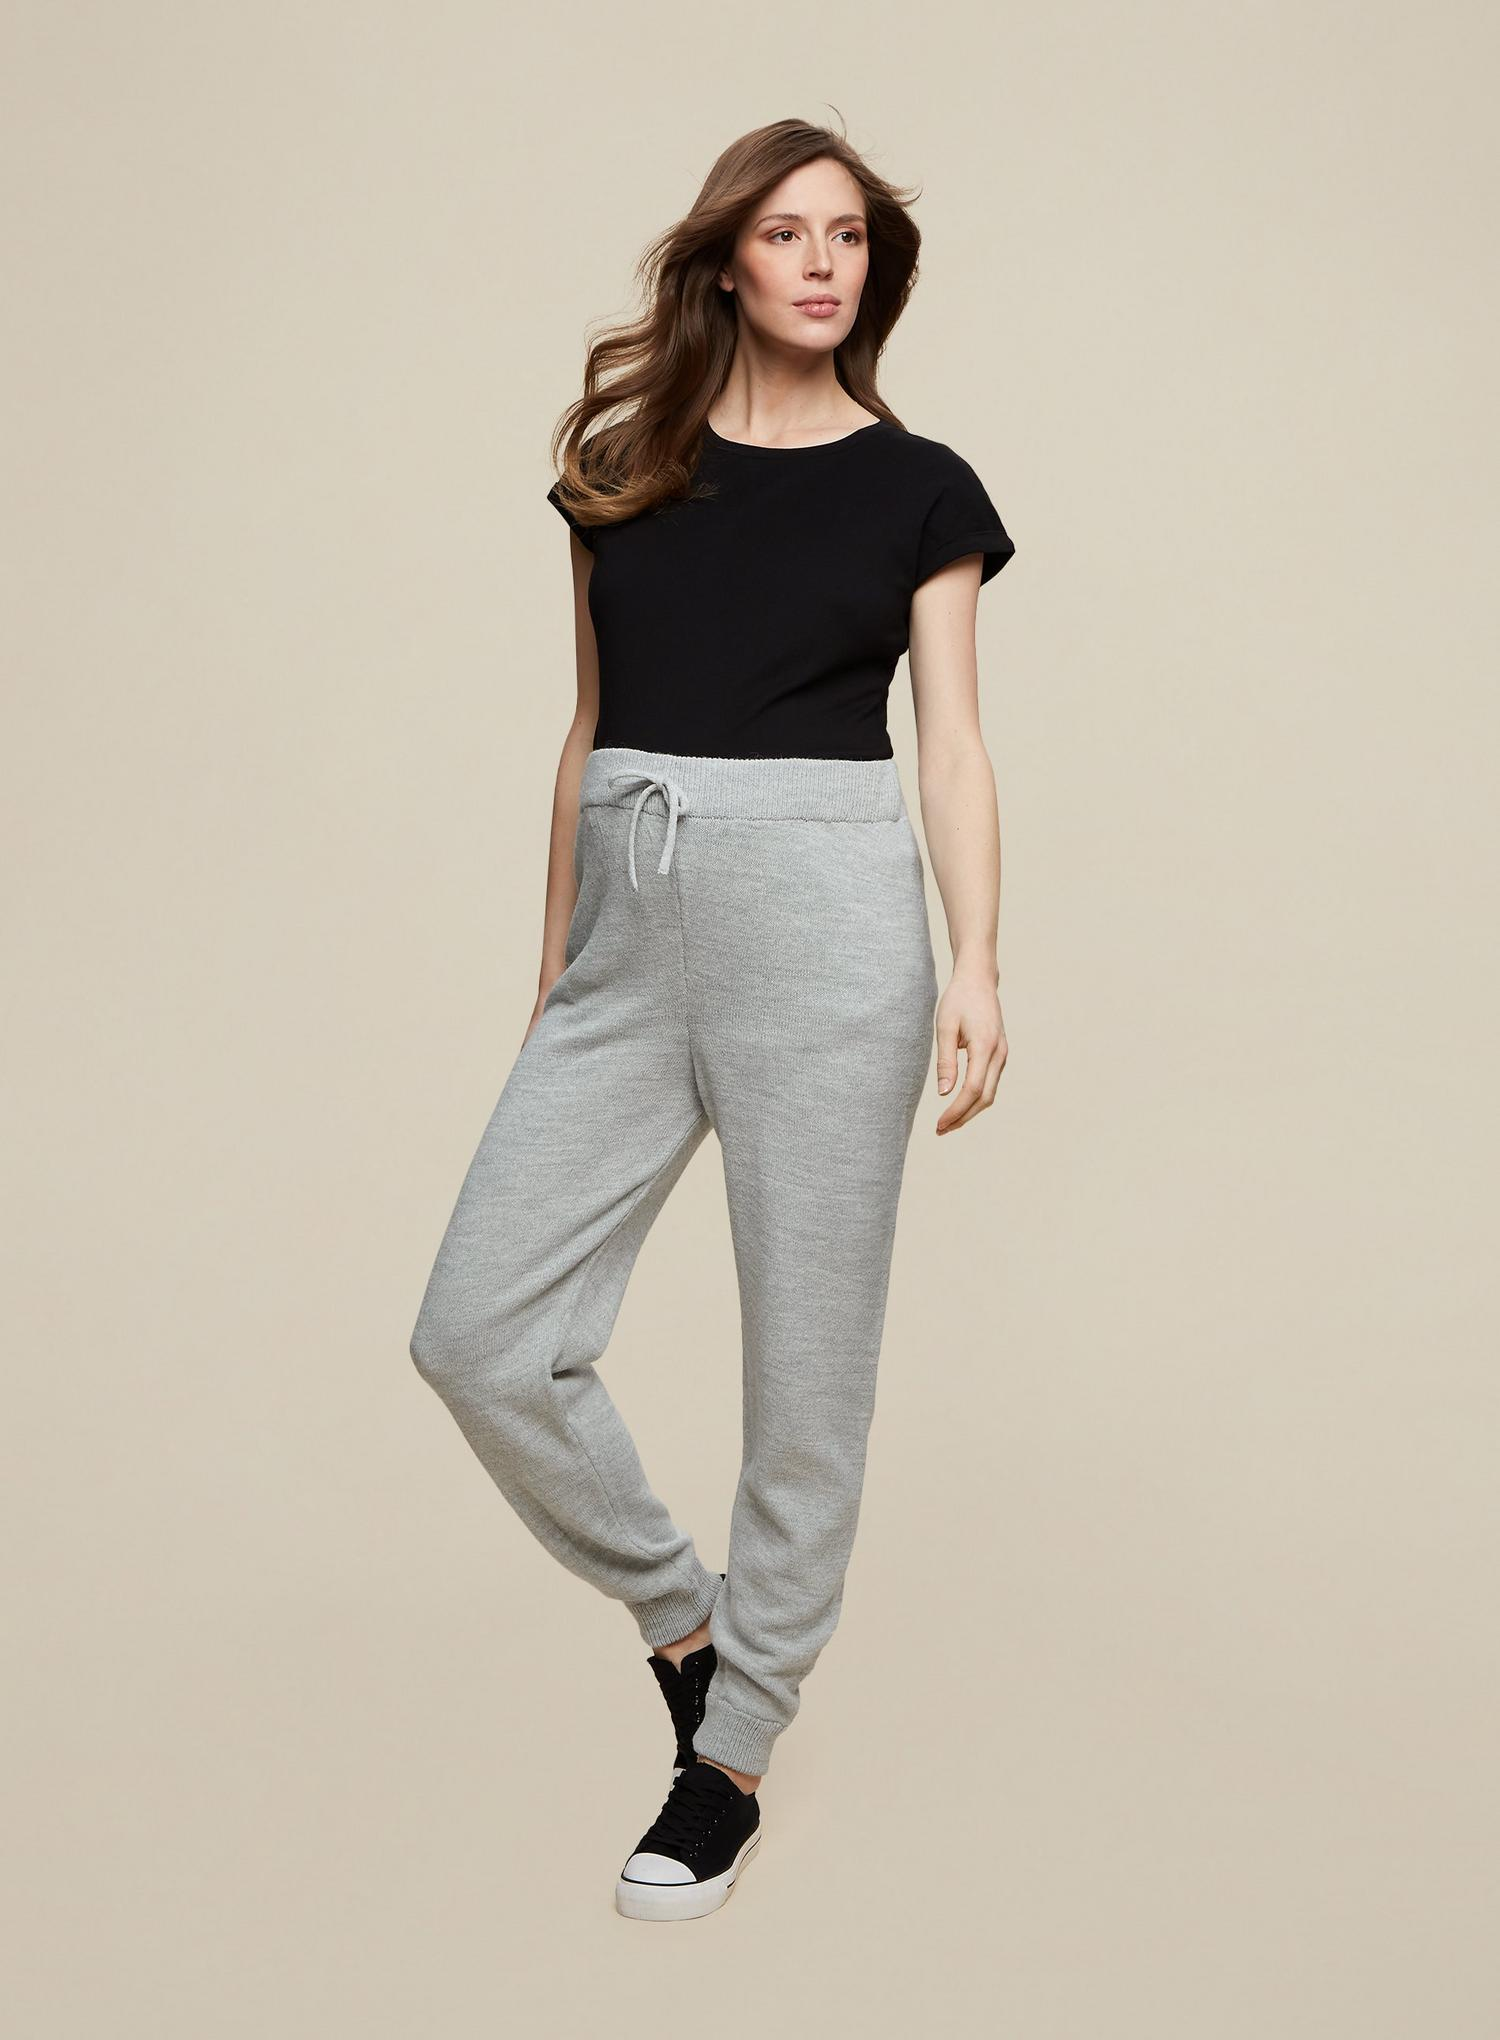 131 Maternity Grey Joggers image number 3